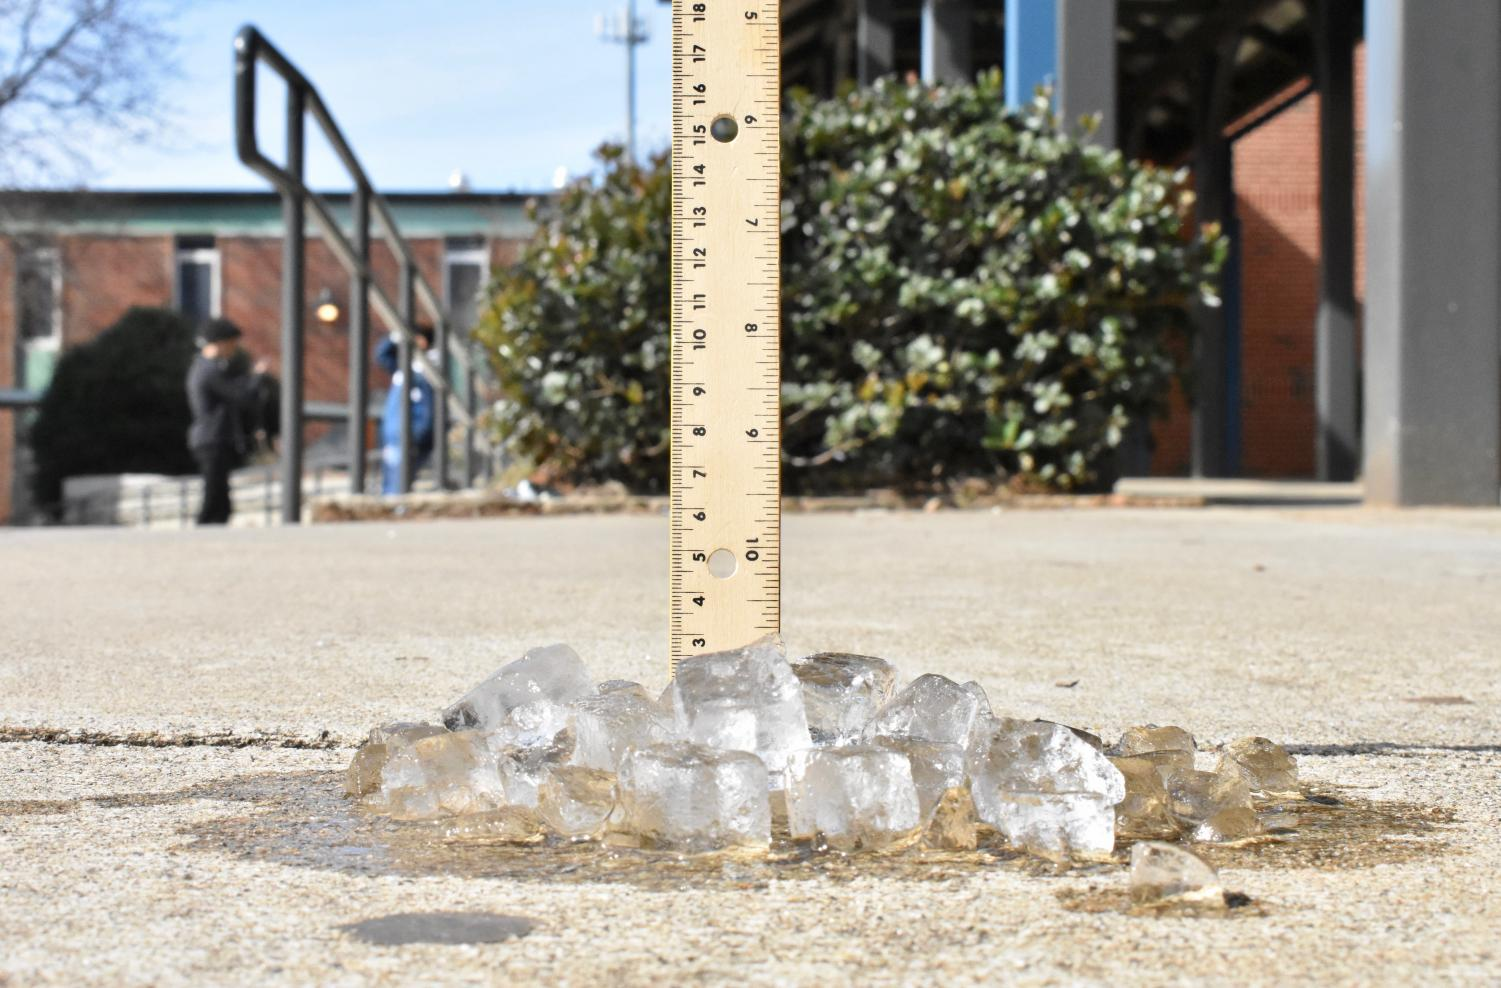 Cobb County school officials canceled school on January 29 due to inclimate weather threats. The sunny and above freezing temperatures tricked the county as no ice formed on the road and even though snow flurries fell, the temperature outside did not allow for it to stick.